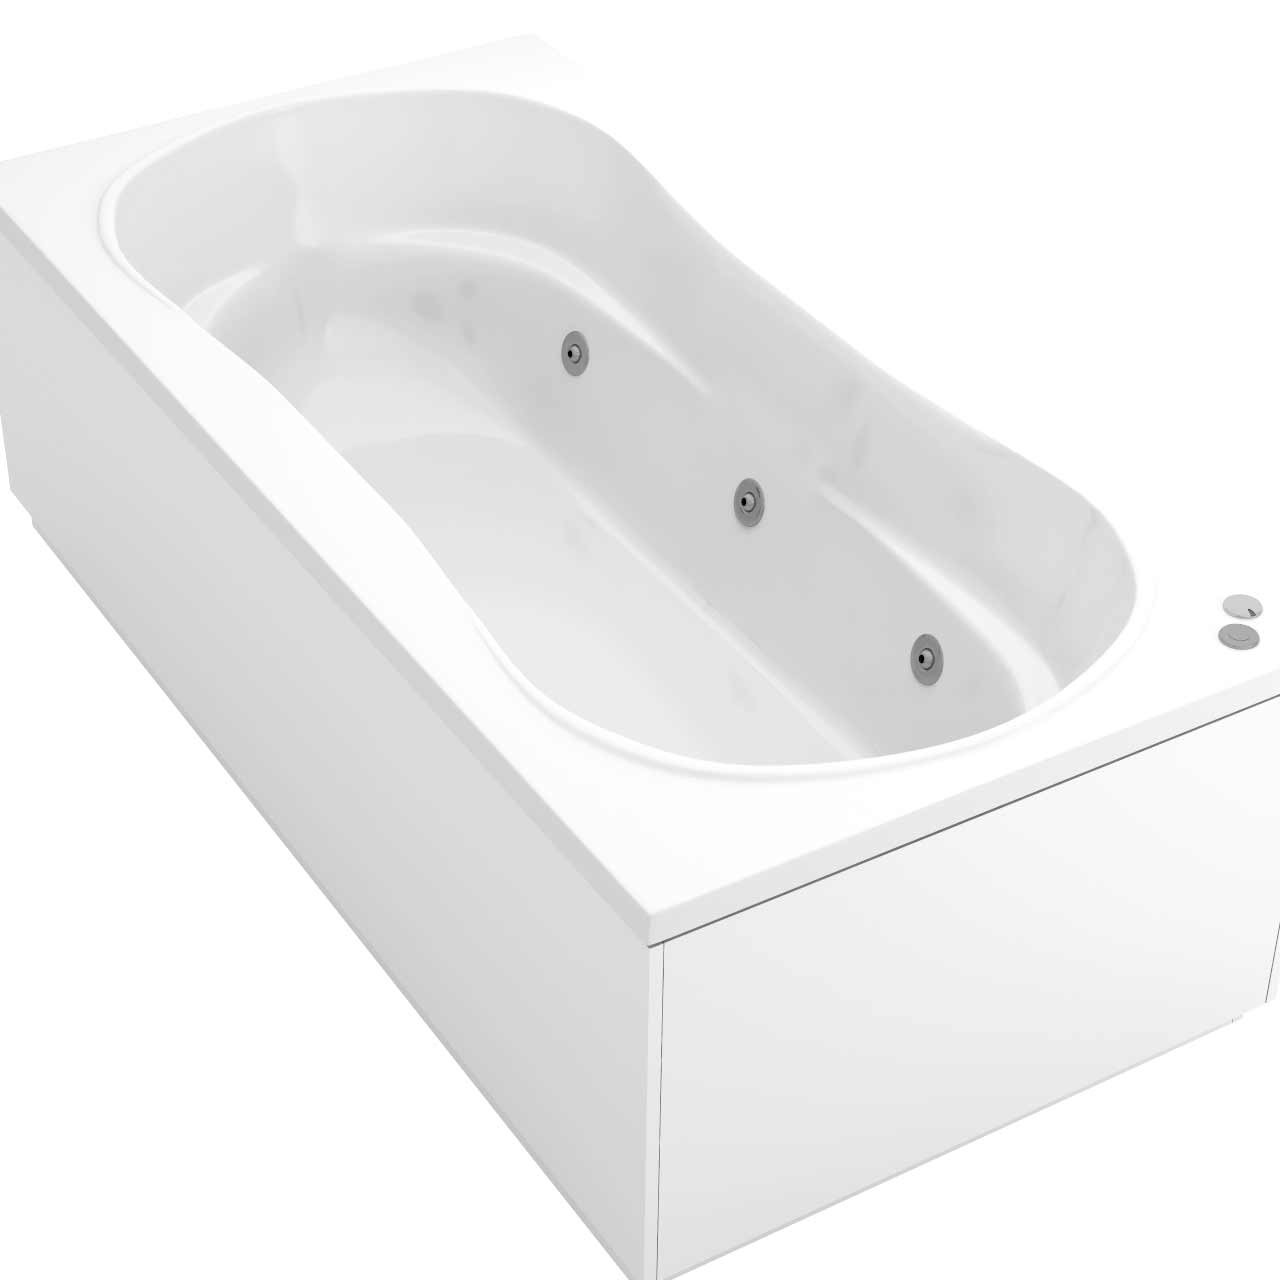 Strata Duo XL Centre Tap 6 Jet Chrome V-Tec Whirlpool Bath 1800x900mm